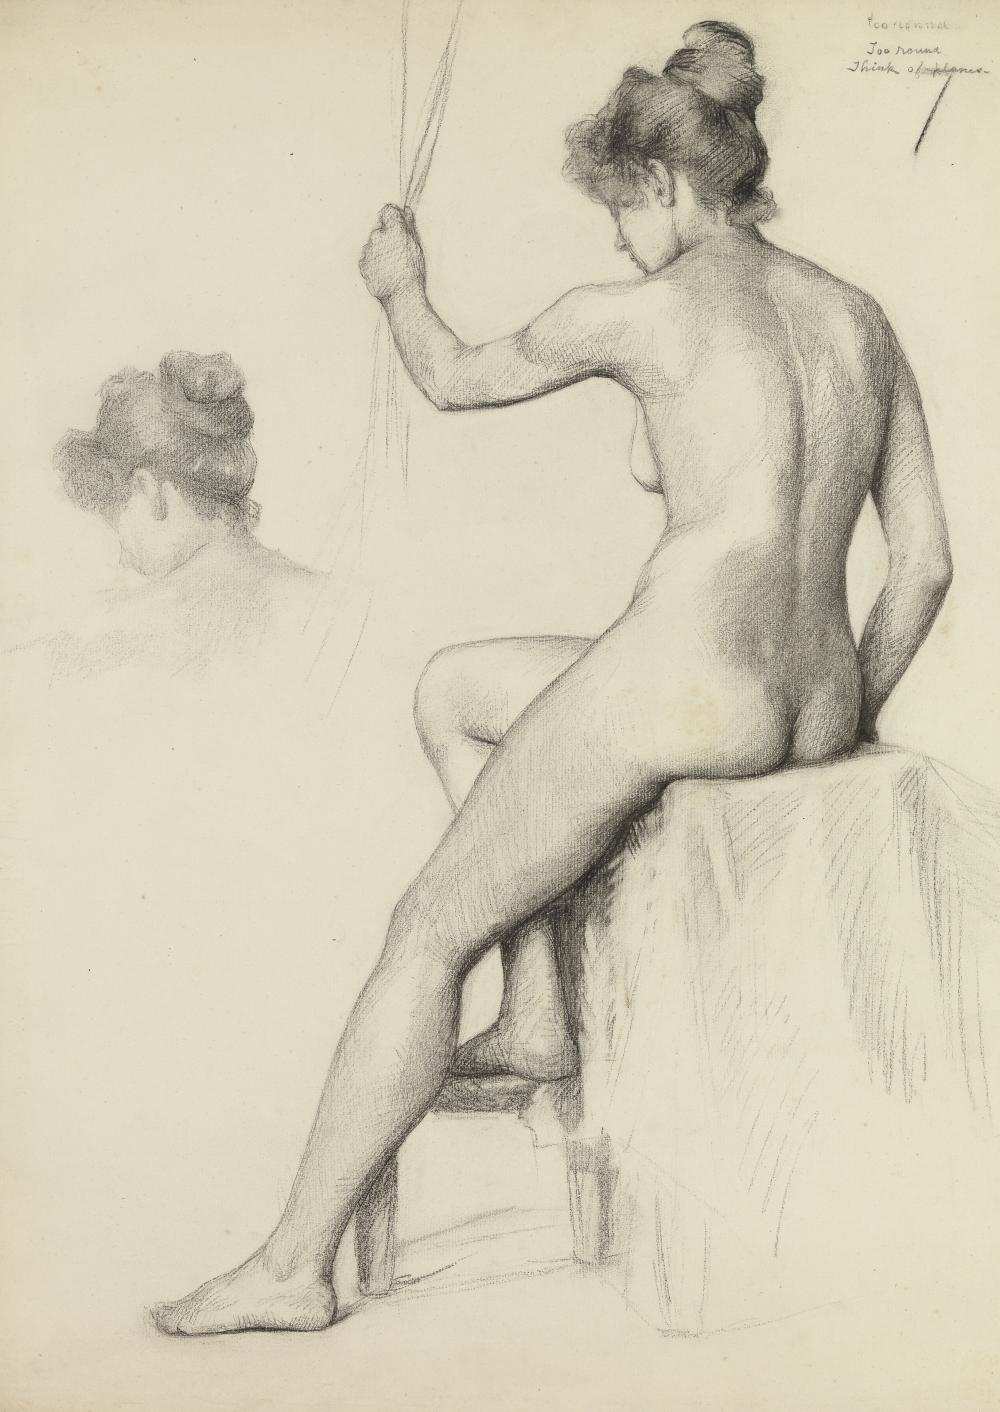 Minerva Josephine Chapman, Seated Nude Woman